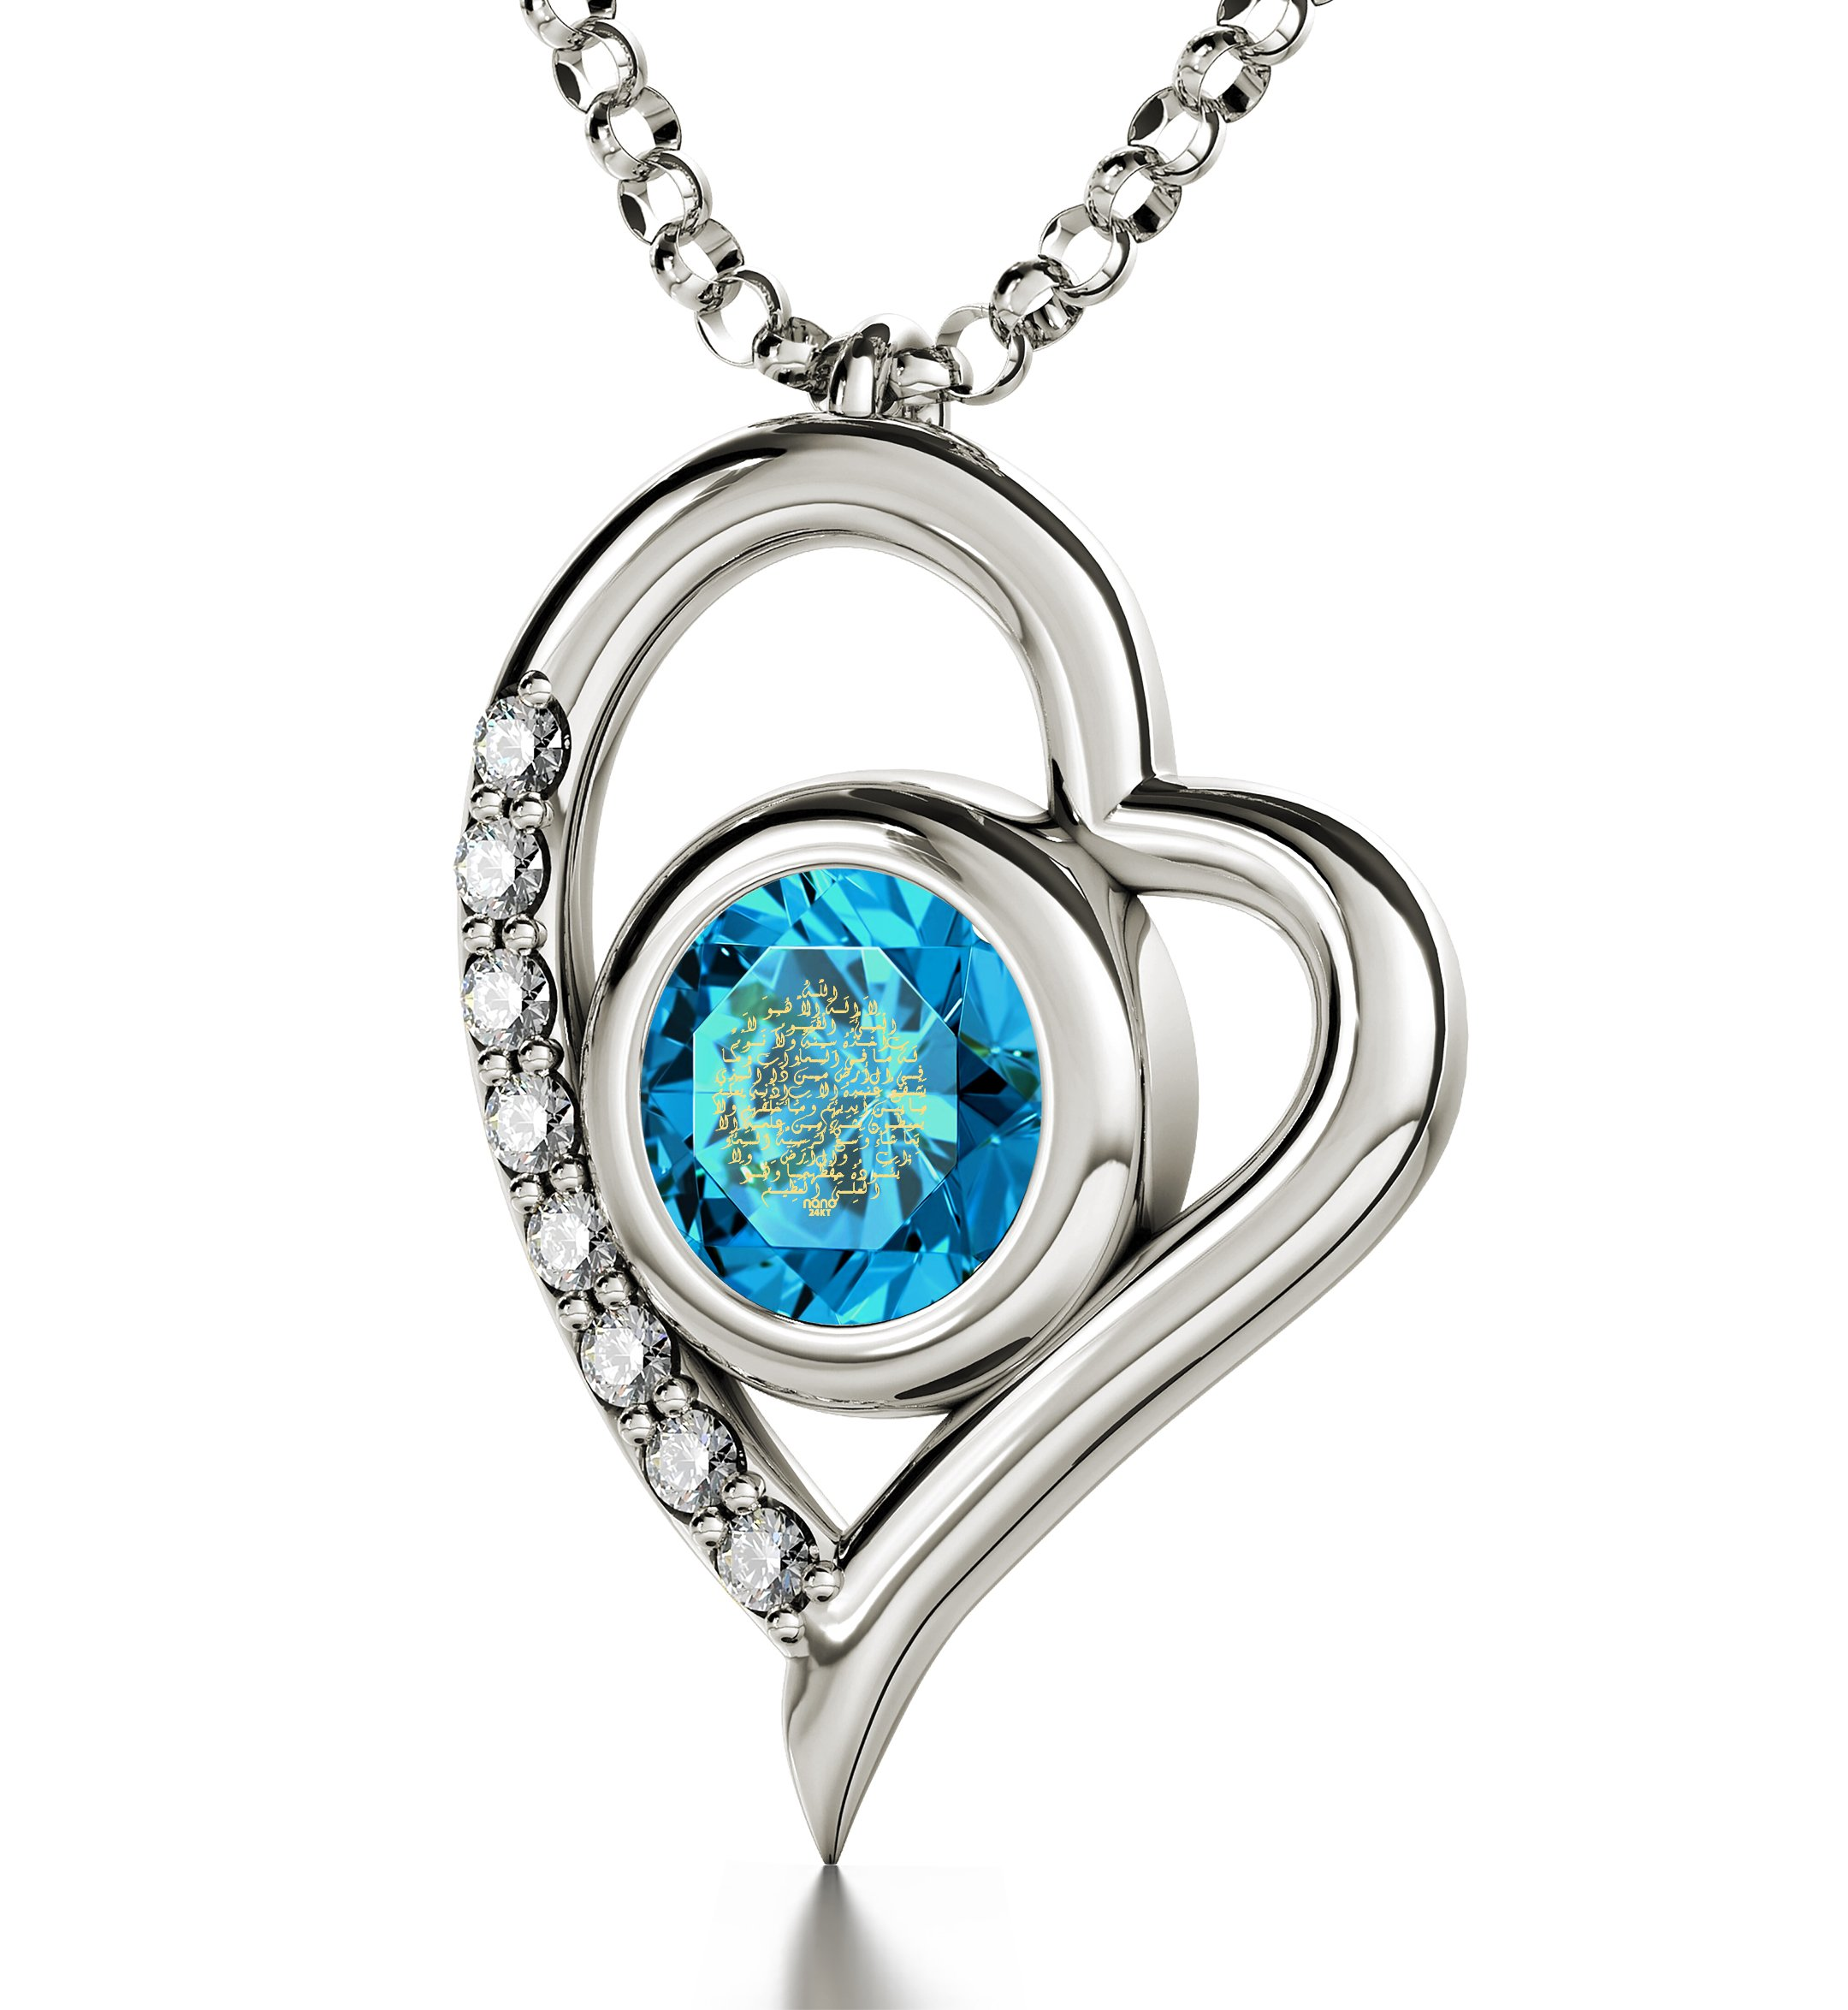 925 Sterling Silver Heart Necklace Ayatul Kursi Pendant Inscribed in 24k Gold on Blue Crystal, 18''